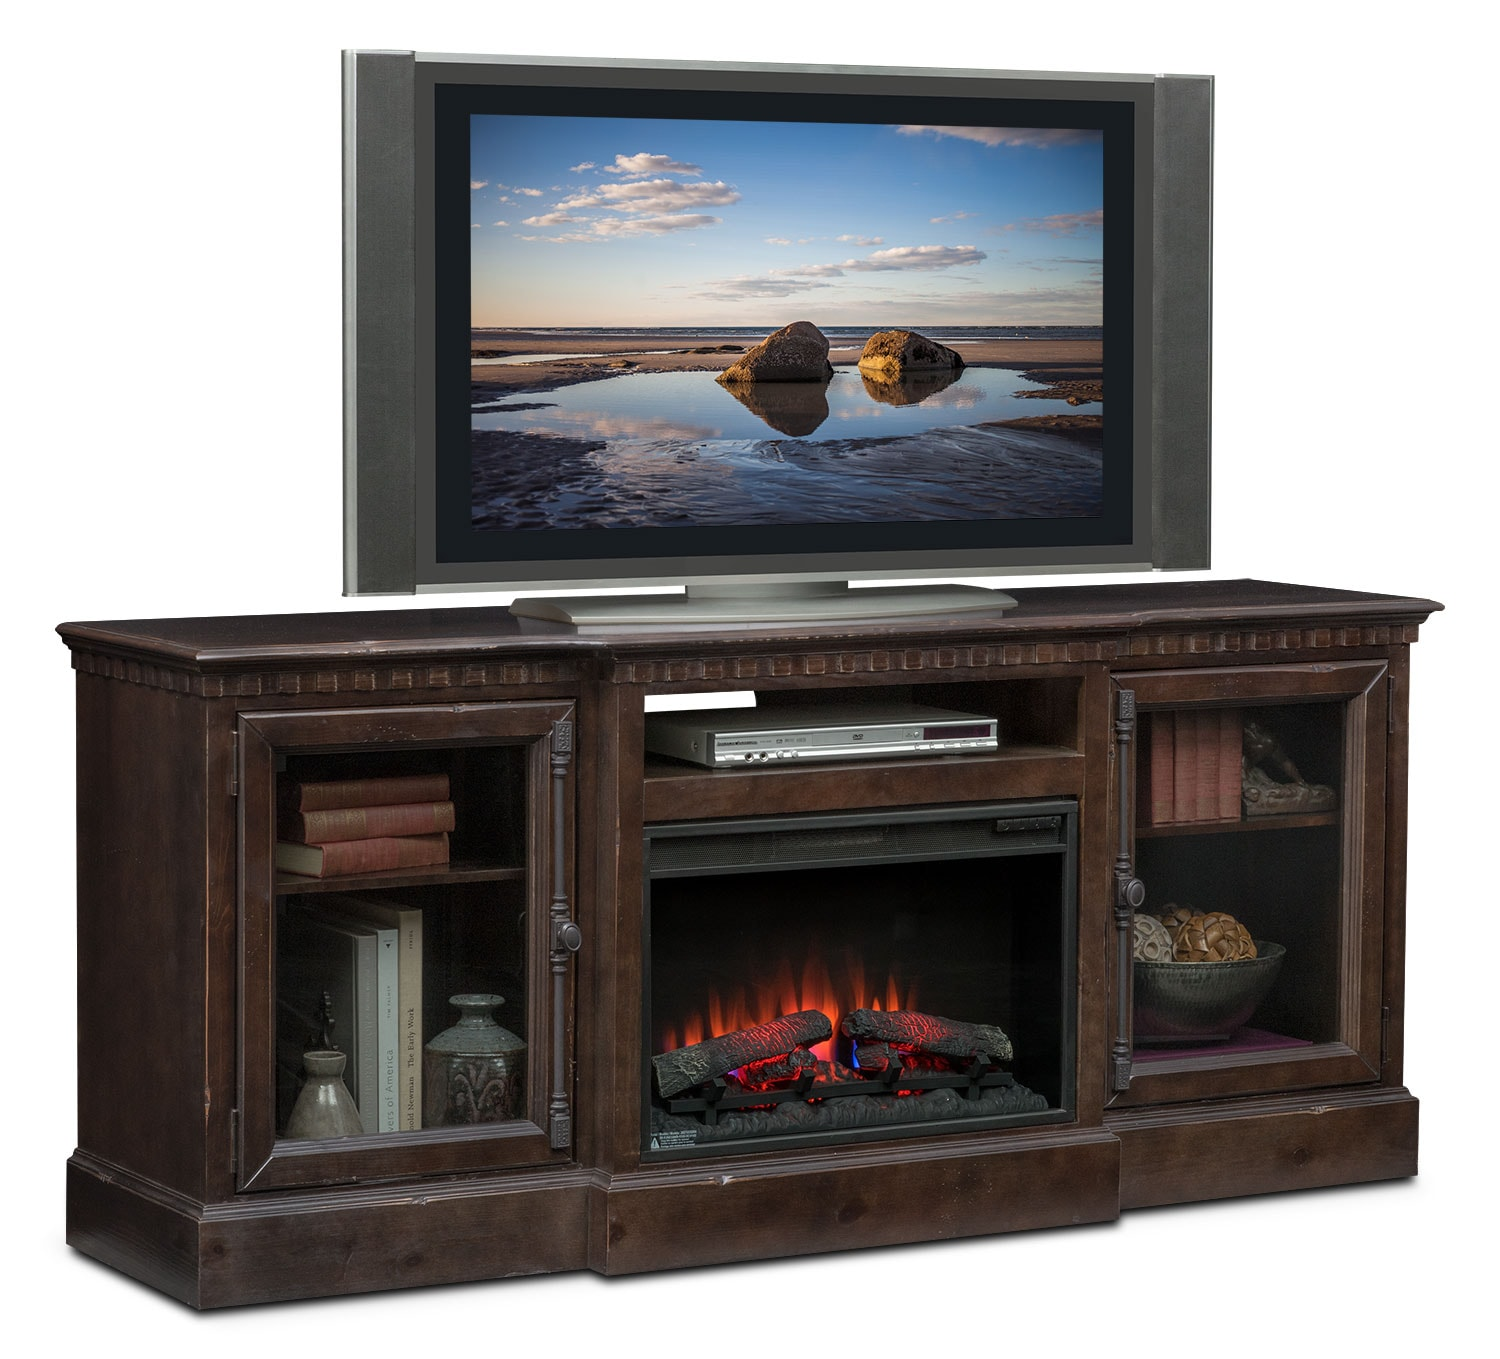 "Claridge 74"" Traditional Fireplace Media Stand - Tobacco"